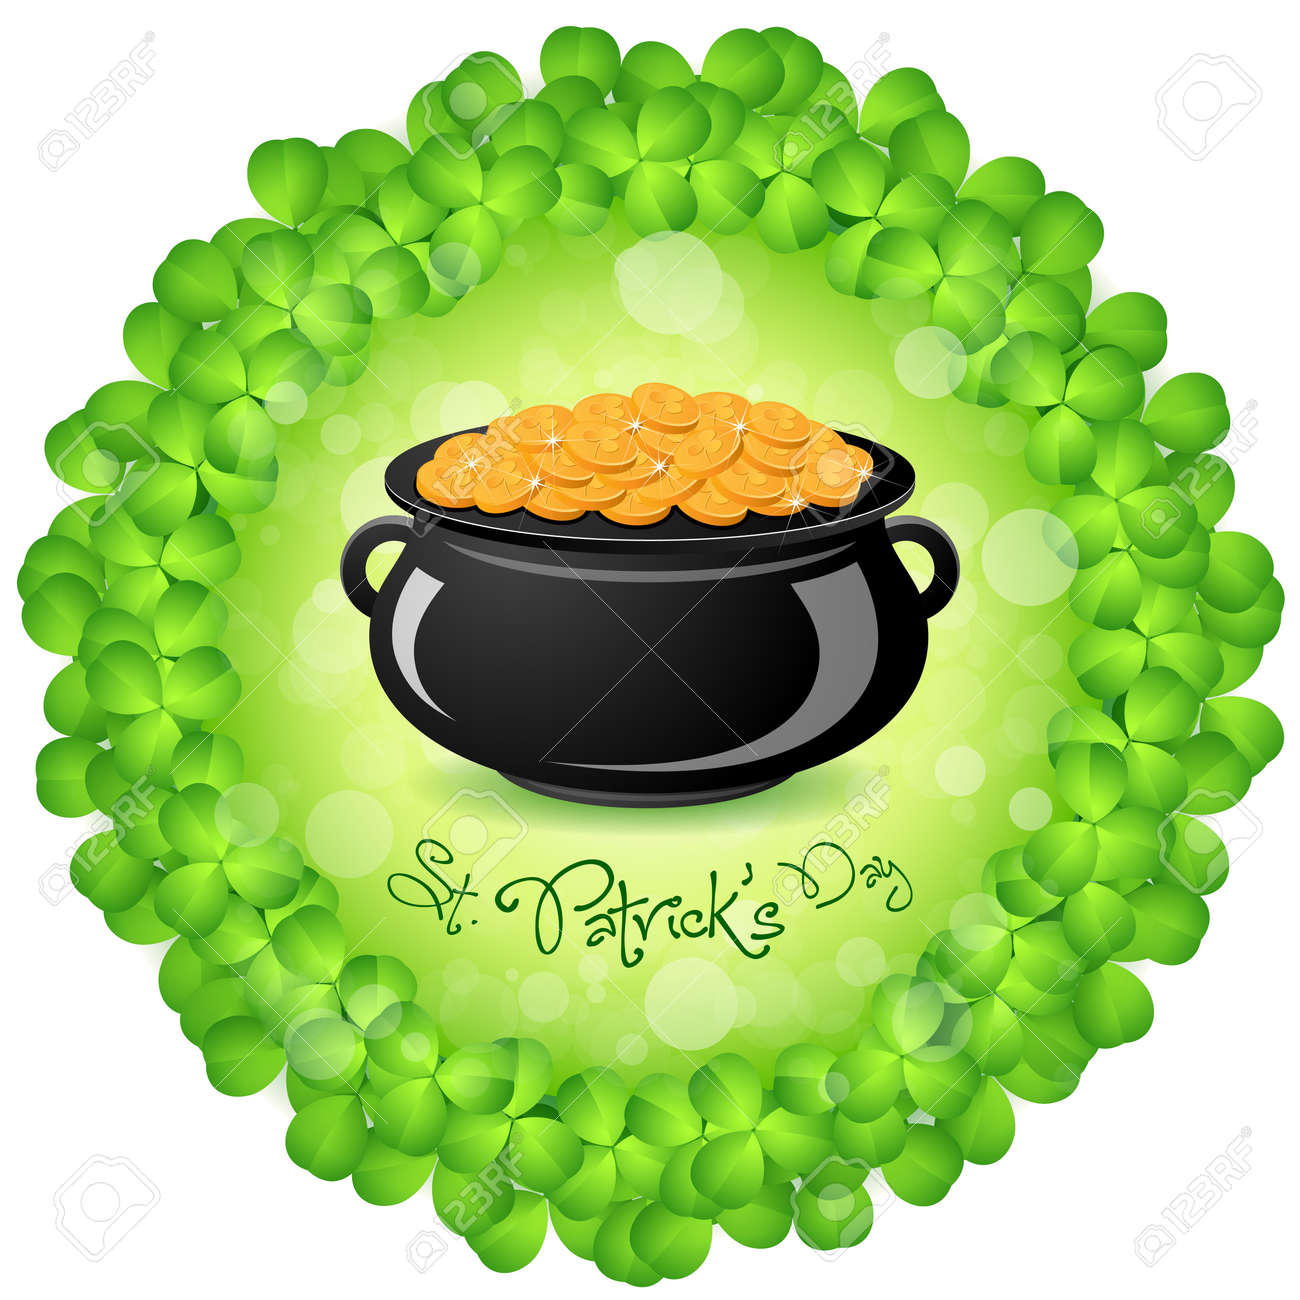 St. Patricks Day Cauldron with Gold Coins and Shamrock Around Stock Vector - 17860190